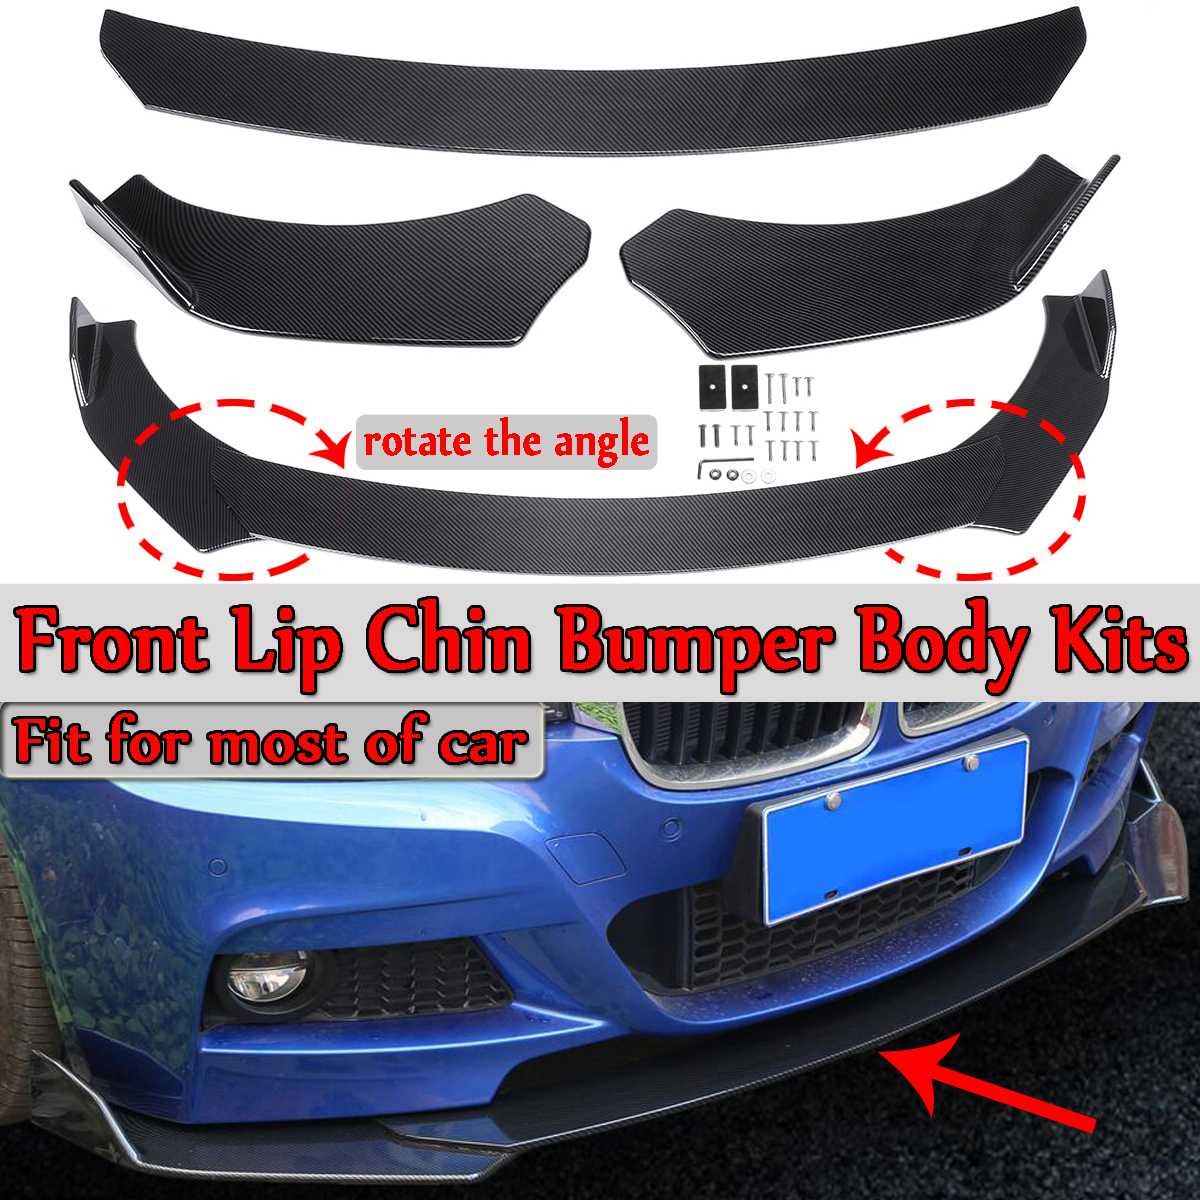 Universal 3Pieces Car Front Lip Chin Bumper Body Kits Carbon Fiber Look/ Black Rotate The Angle New For Honda For Audi For BenzUniversal 3Pieces Car Front Lip Chin Bumper Body Kits Carbon Fiber Look/ Black Rotate The Angle New For Honda For Audi For Benz